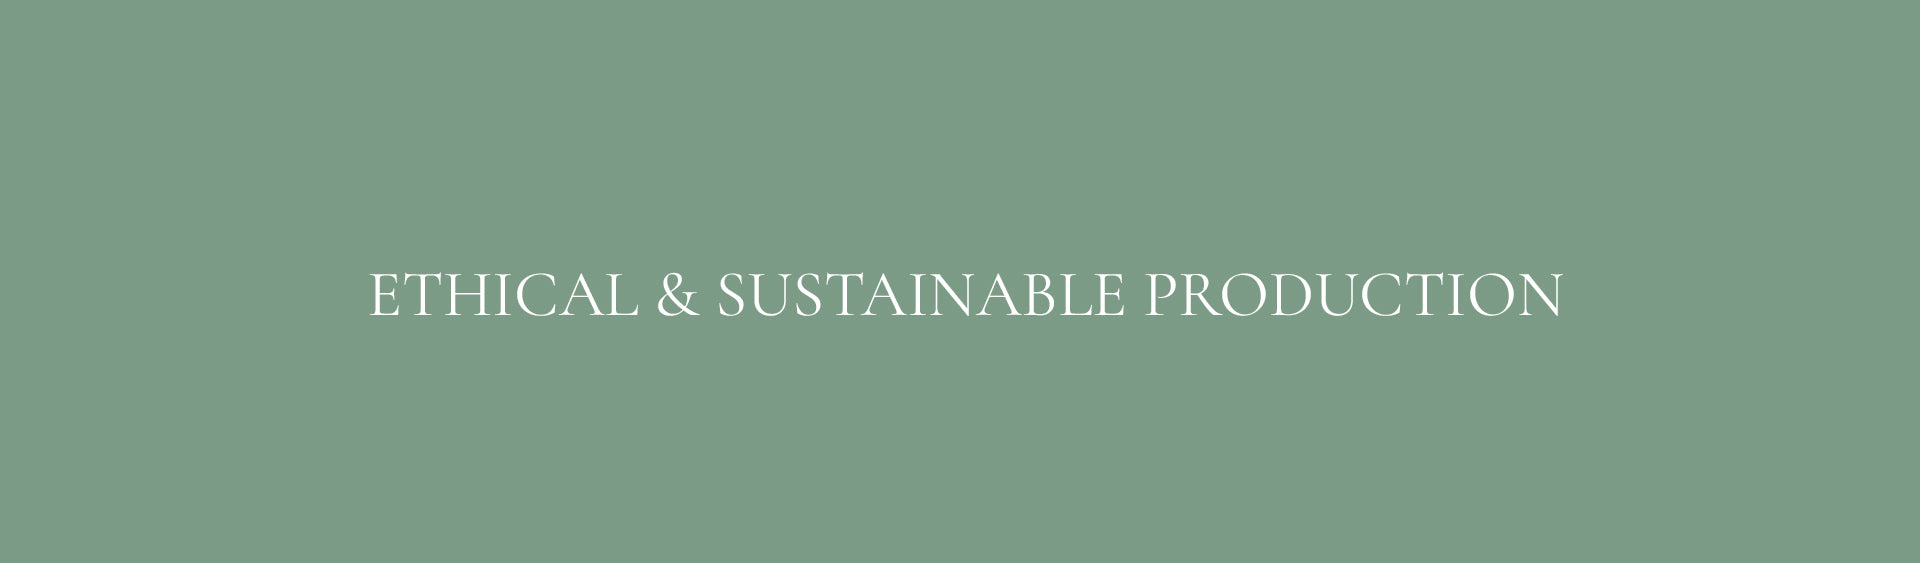 Ethical & Sustainable Production